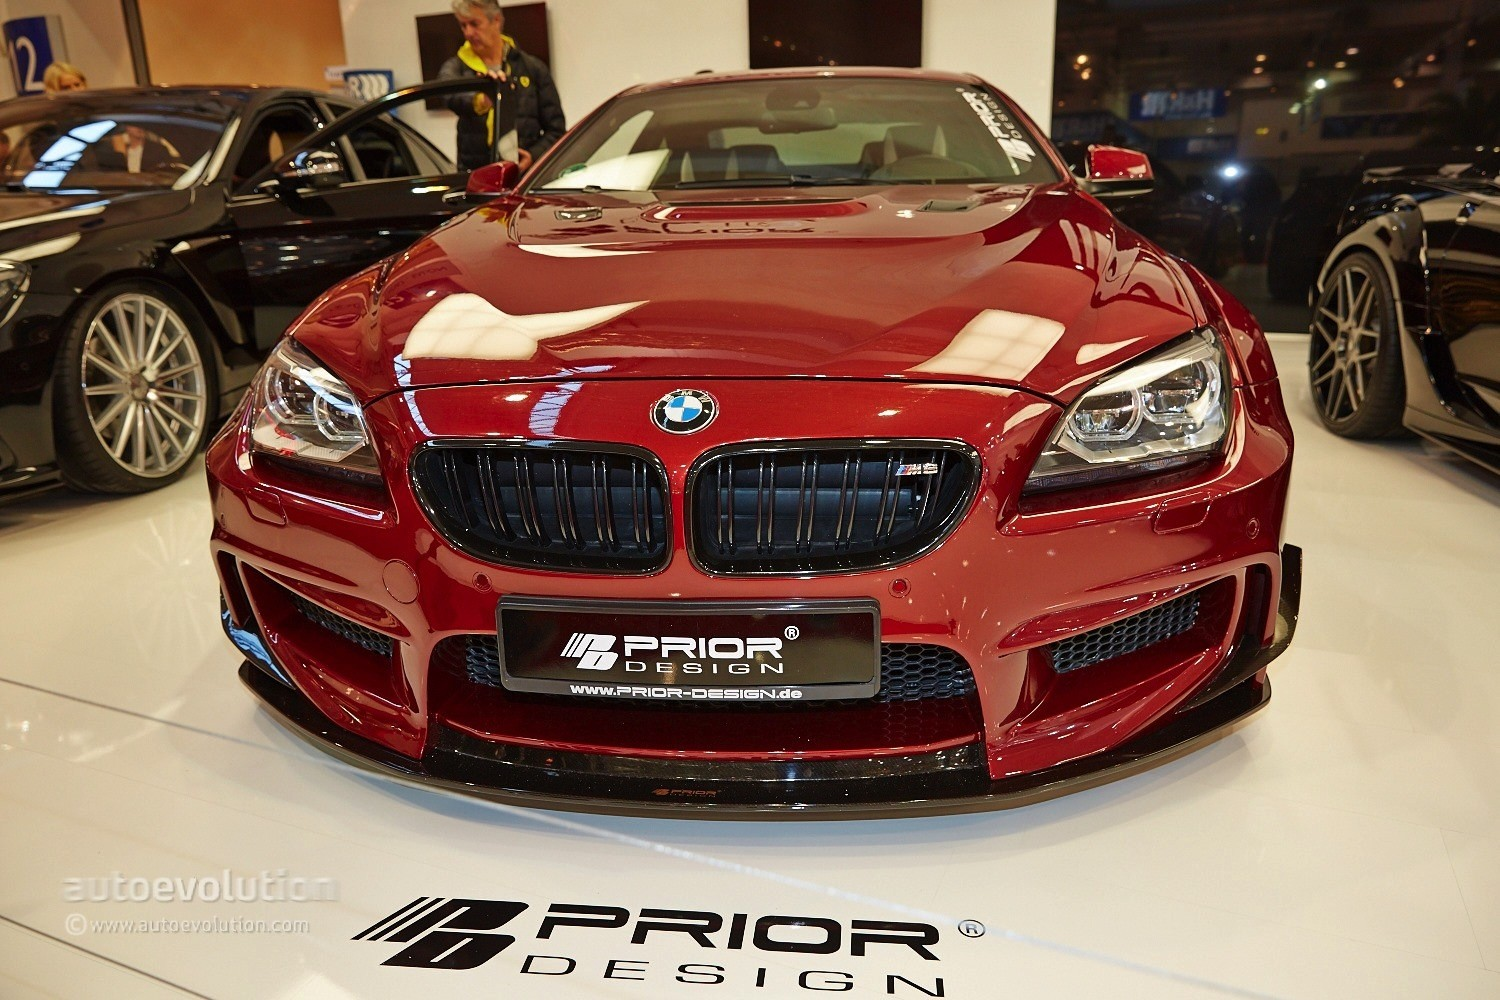 bmw m6 with a quilted interior belongs to prior design at essen 2014 live photos autoevolution. Black Bedroom Furniture Sets. Home Design Ideas